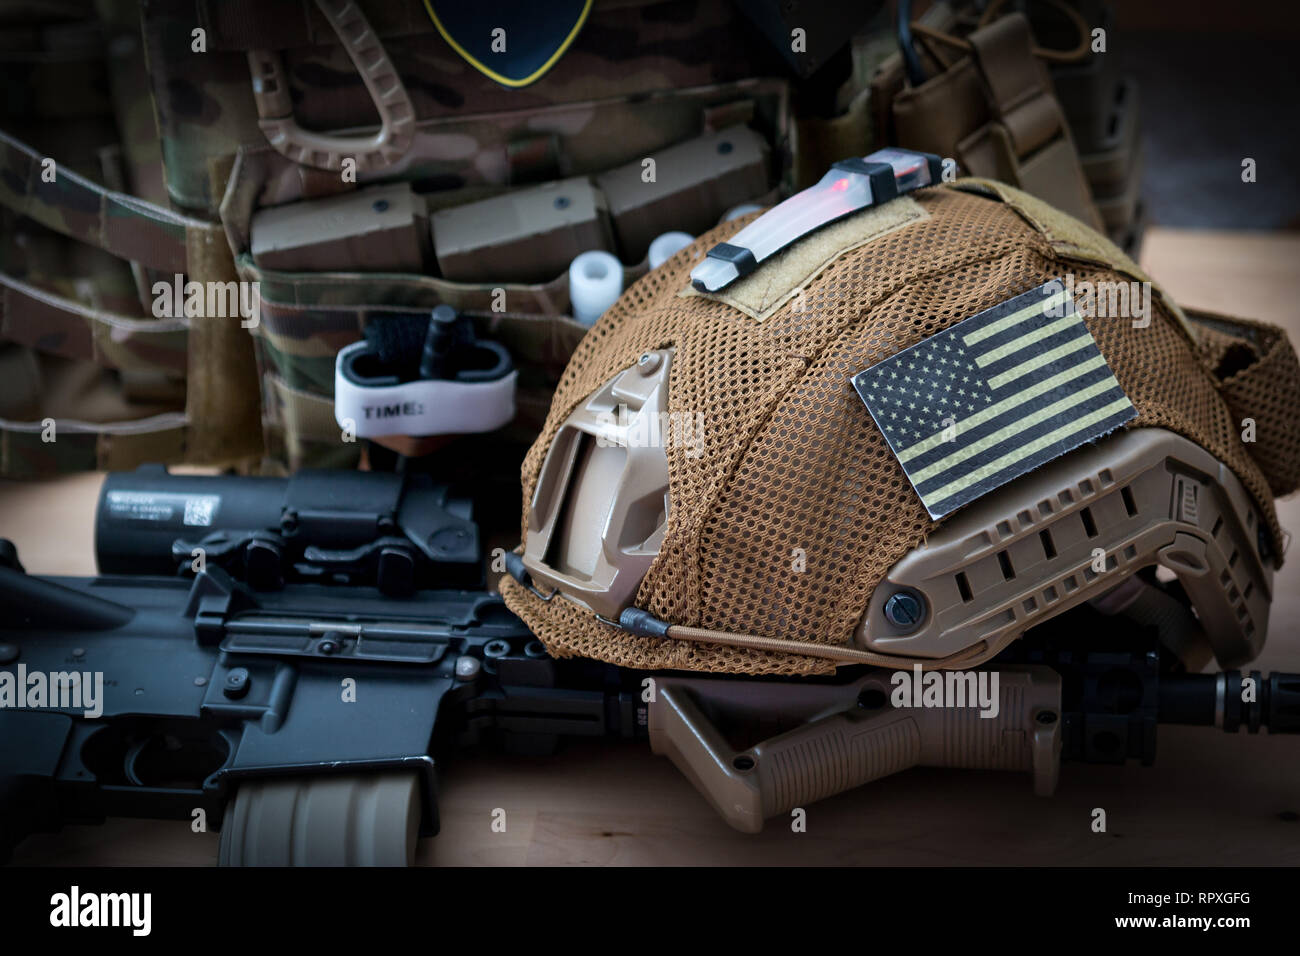 military equipment with a rifle on a wooden table - Stock Image